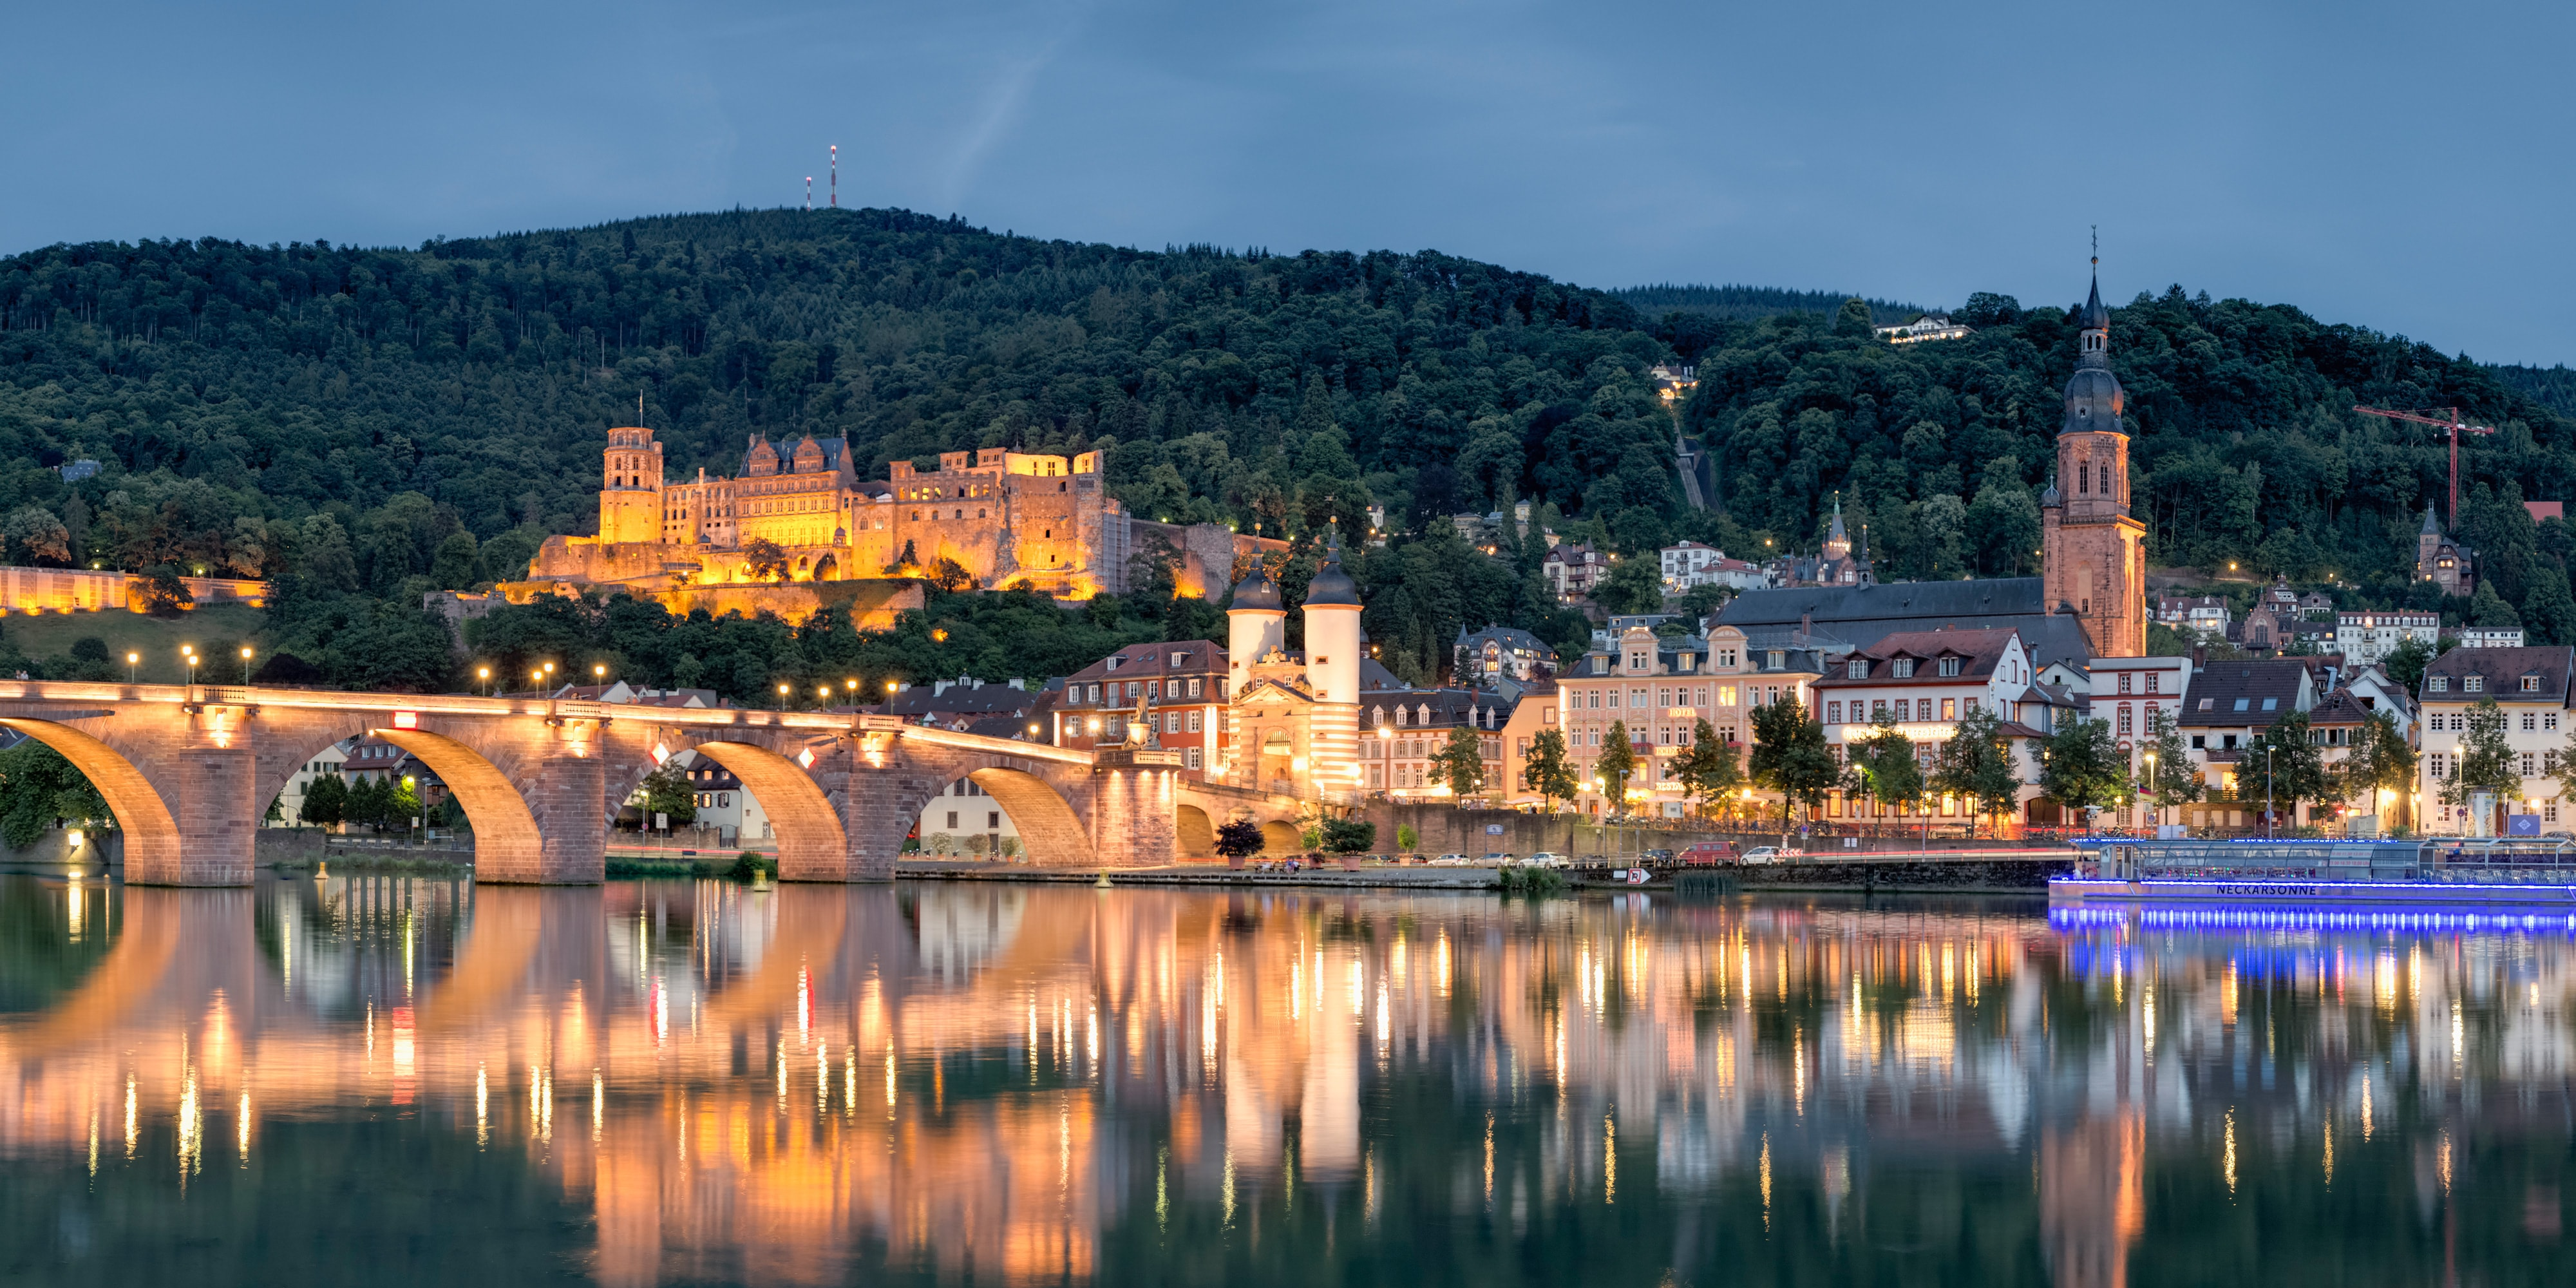 ABD-rhine-food-wine-Heidelberg-Castle-2x1 Rhine River Cruise: Food And Wine